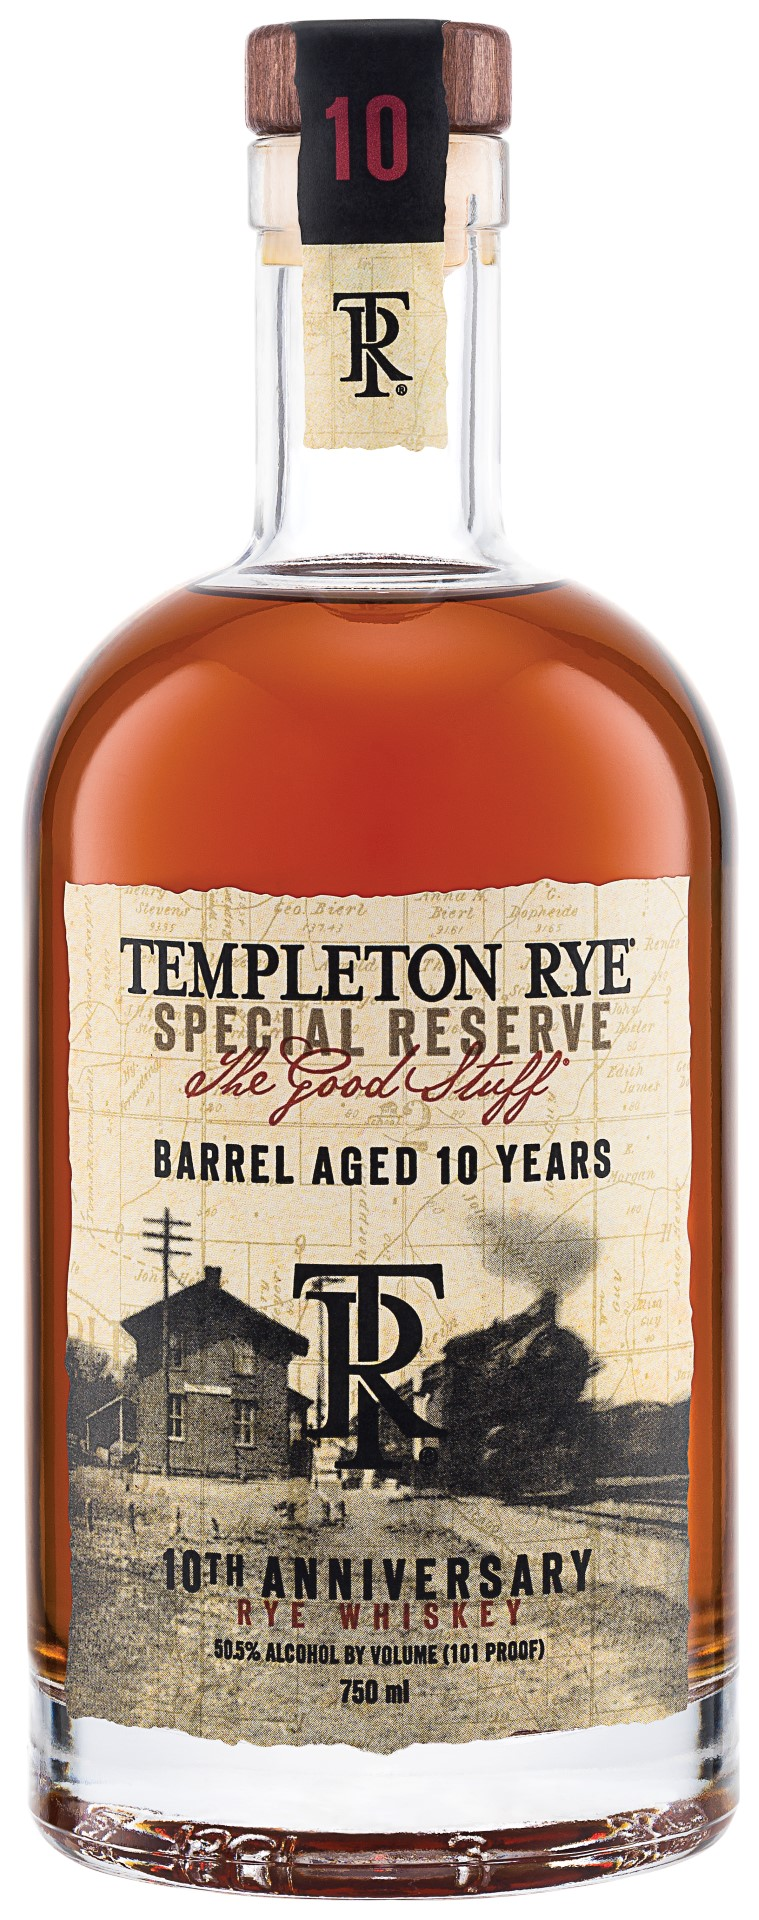 Templeton Rye 10 Years Old